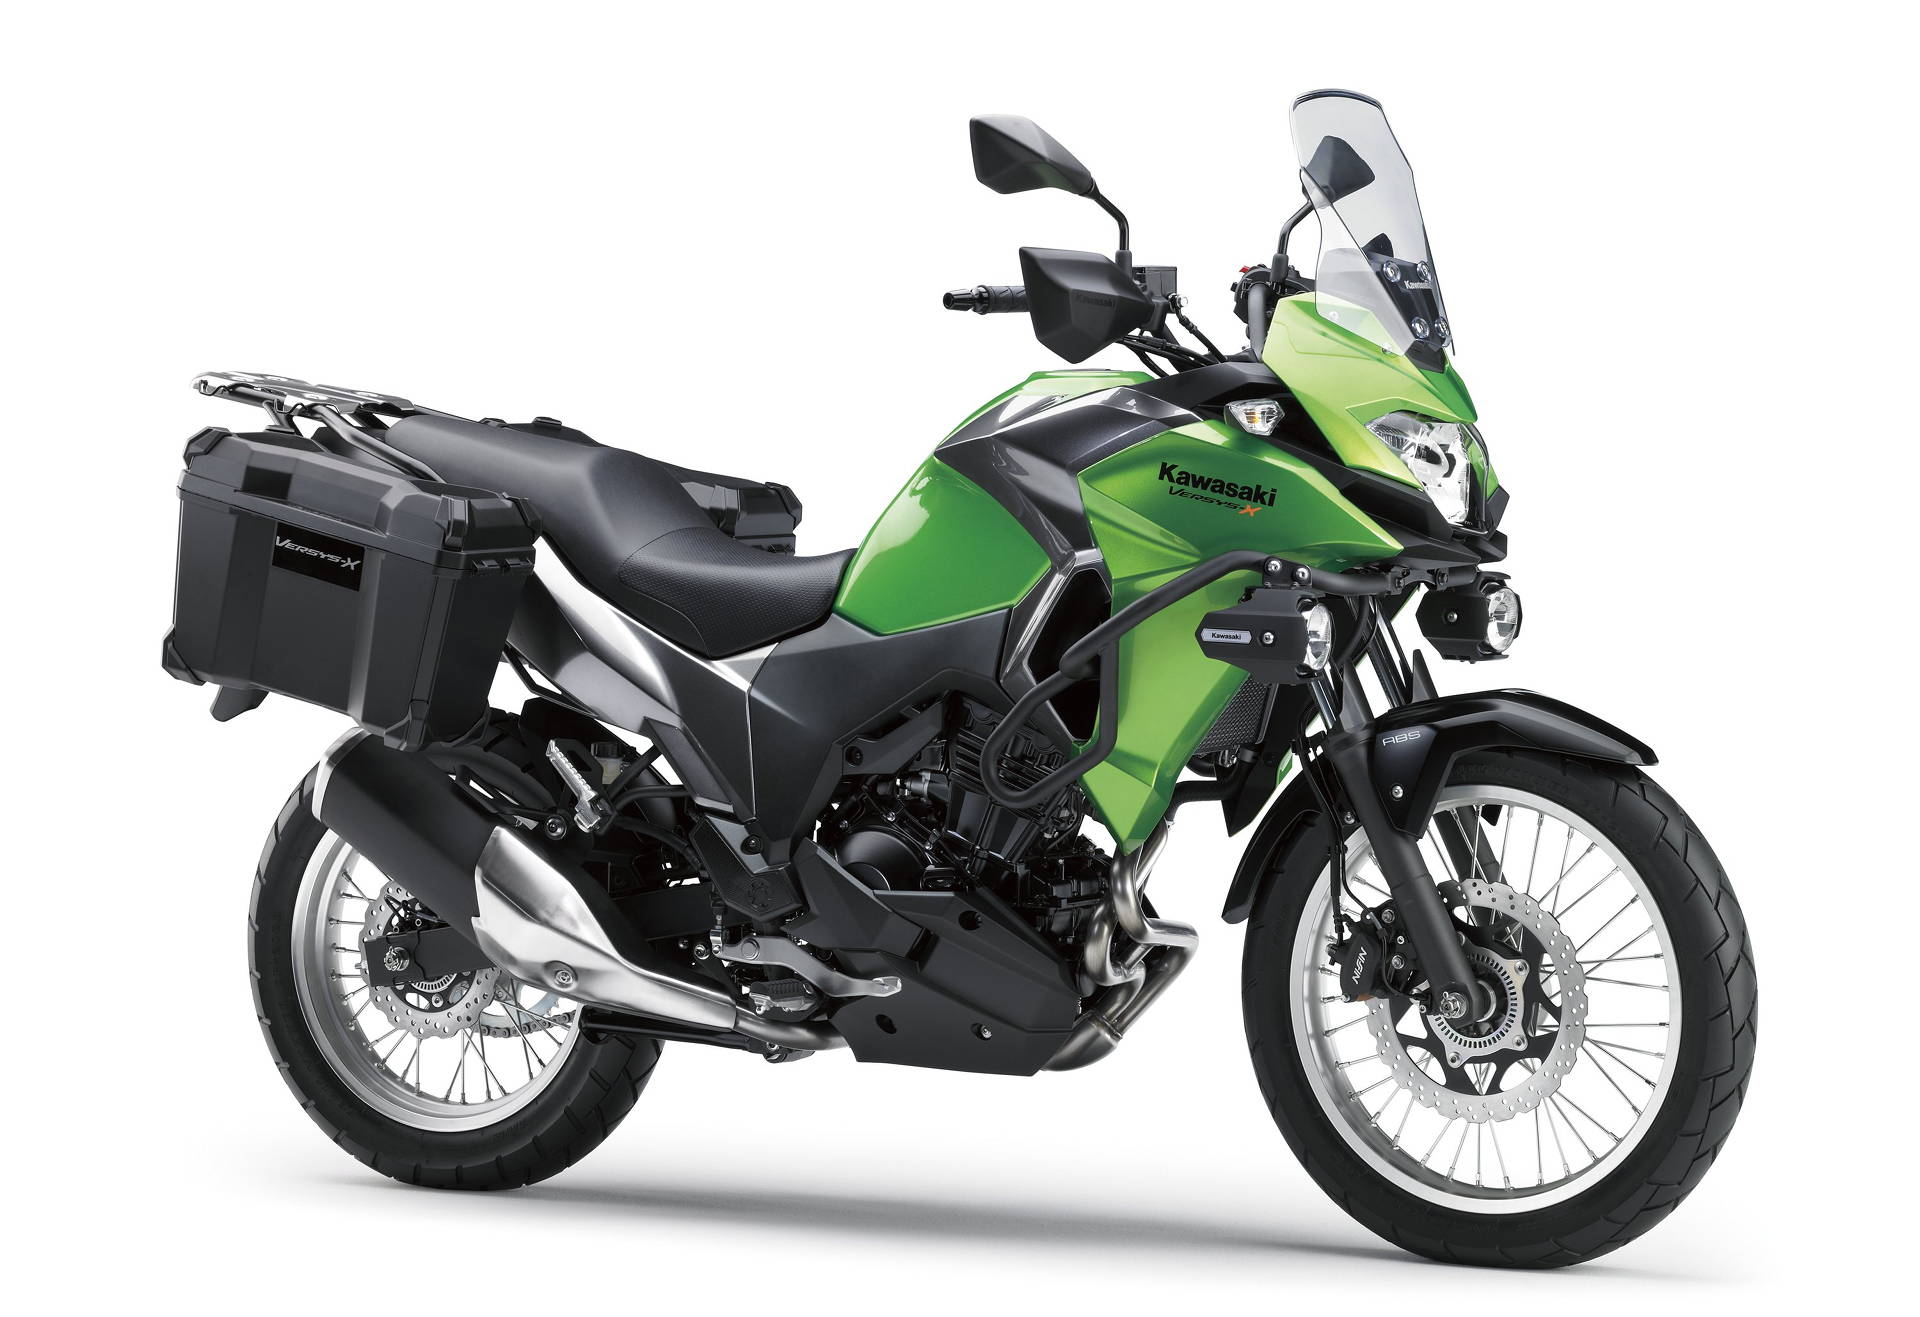 Kawasaki Sport Touring Motorcycles in addition 2016 Bmw F 800 Gs Adventure moreover Kawasaki Versys X 300 Available Spring 2017 Beginning At 5399 also 2017 Kawasaki Ninja 650 First Ride Test 12 Fast Facts further Bmw Motos Modelos Y Precios. on 2017 versys 650 abs